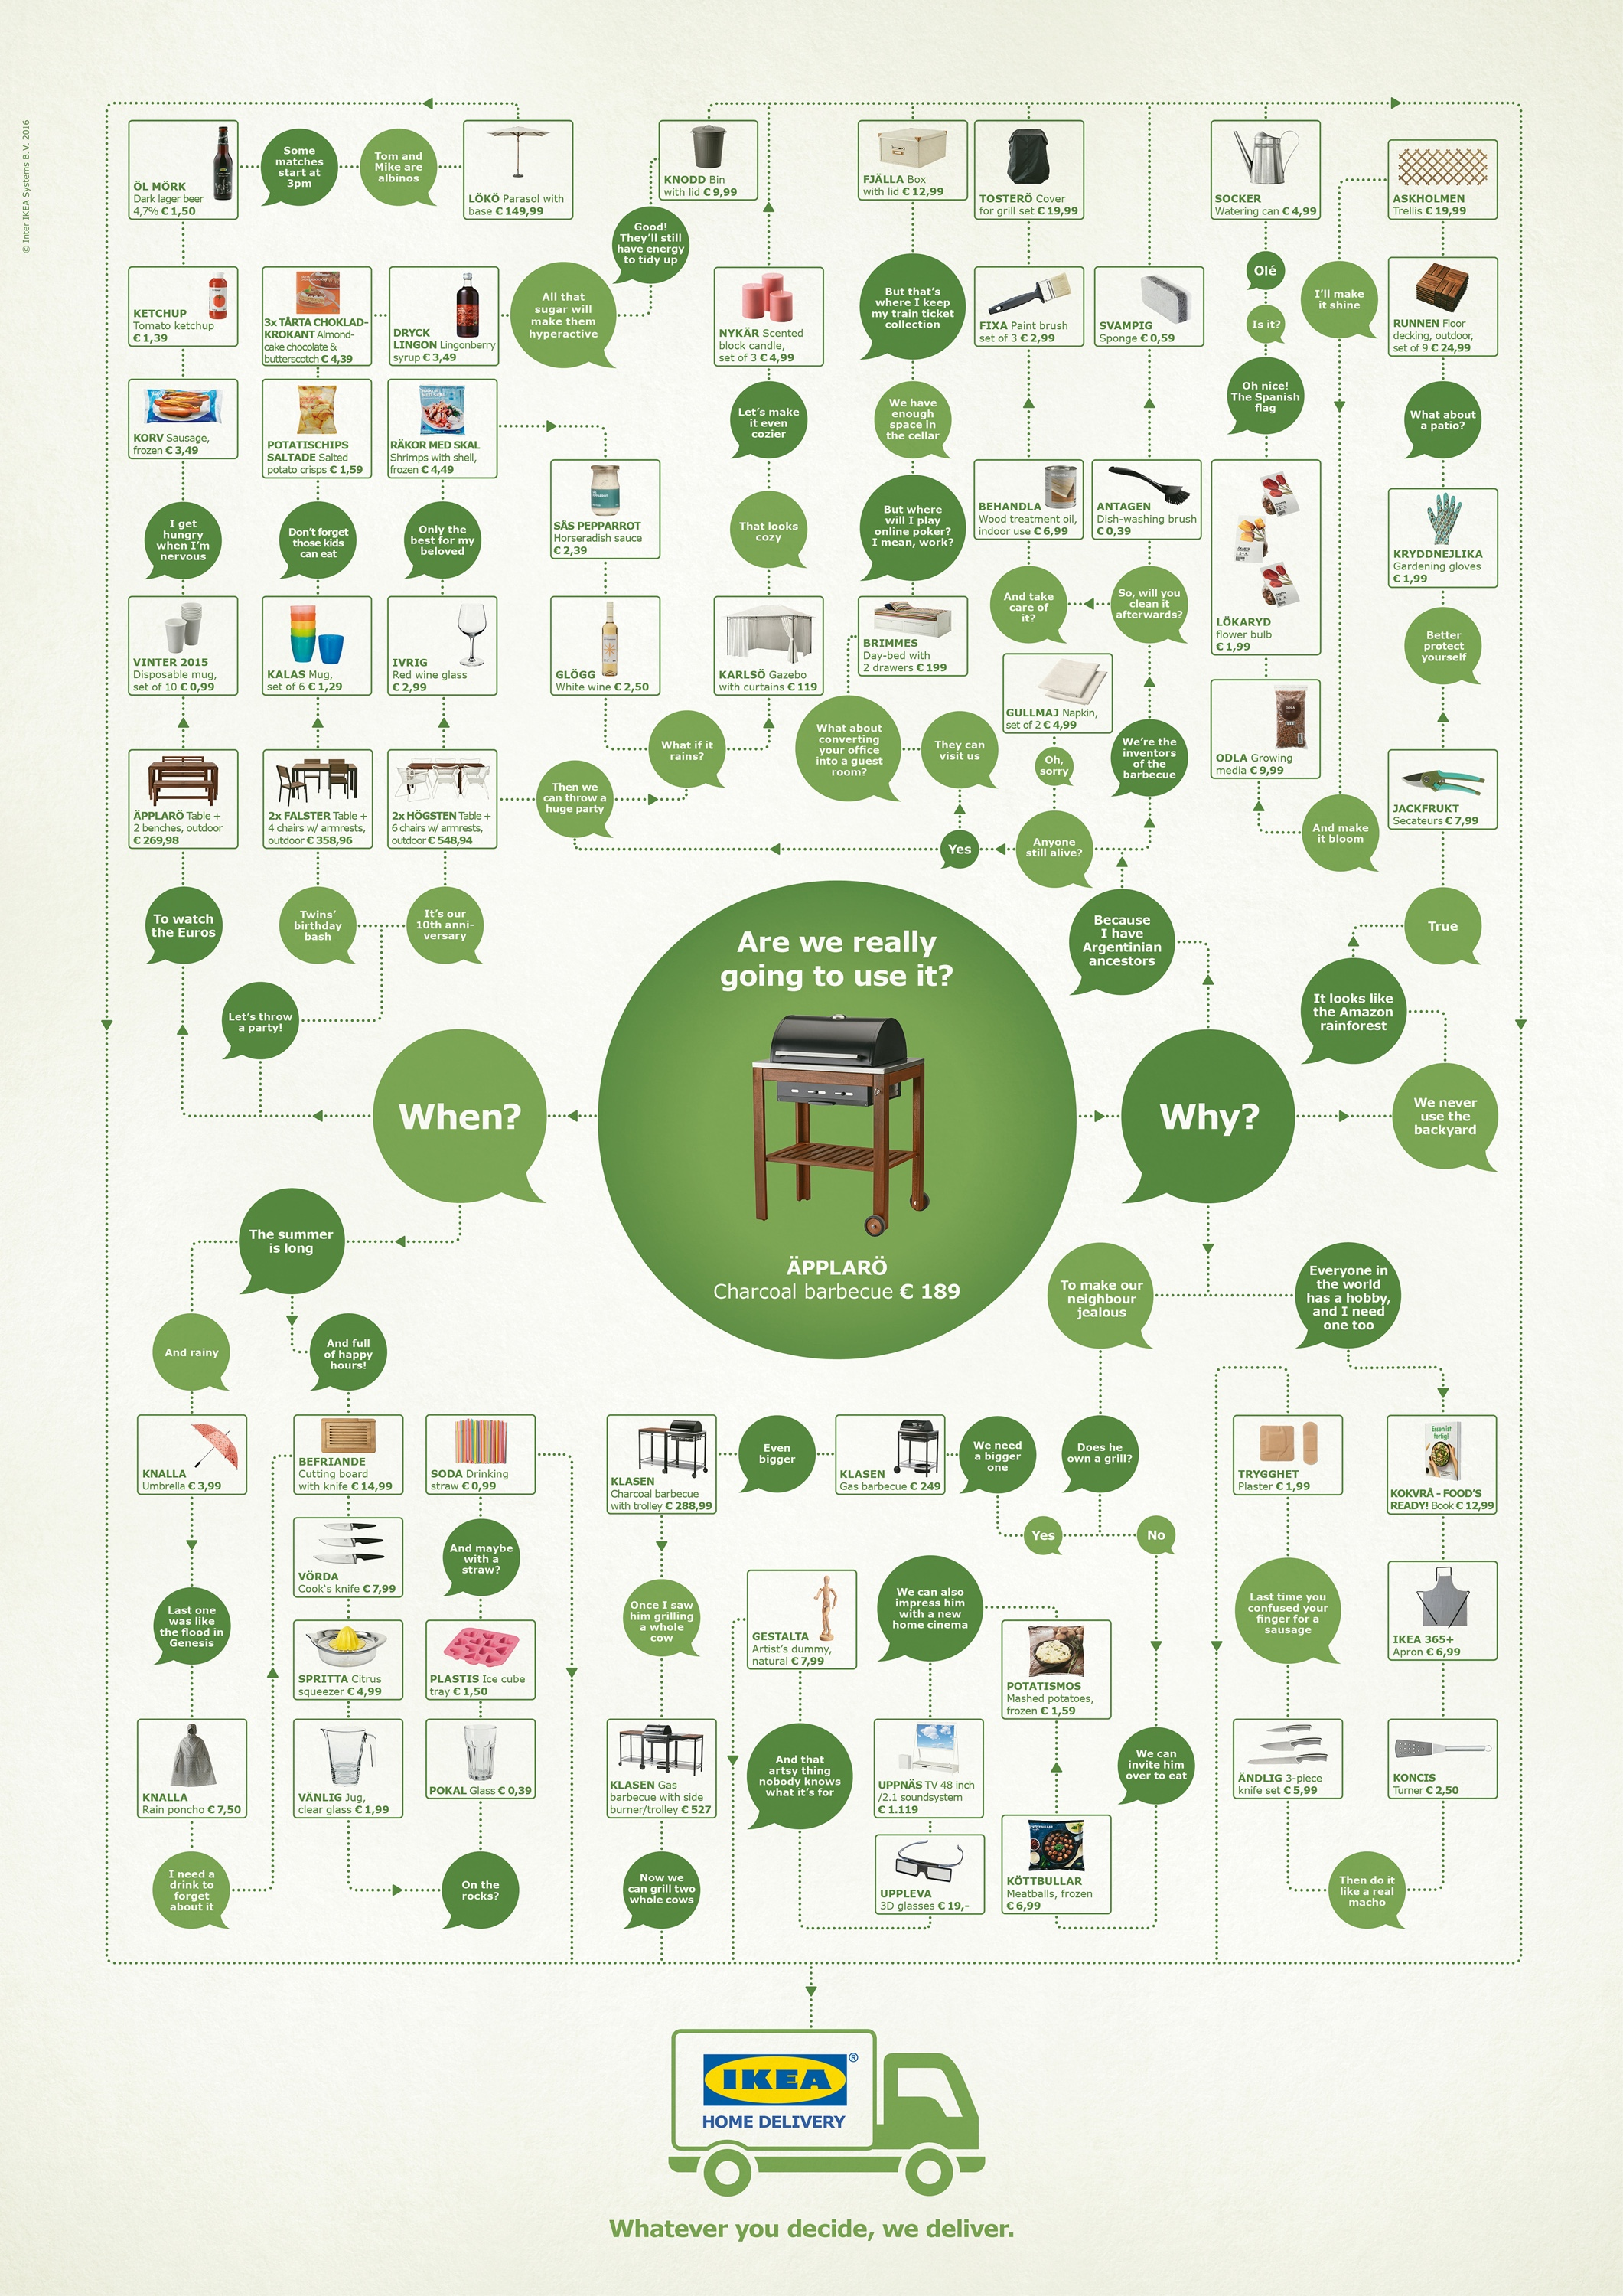 IKEA Whatever you decide we deliver Advertising Agency DDB